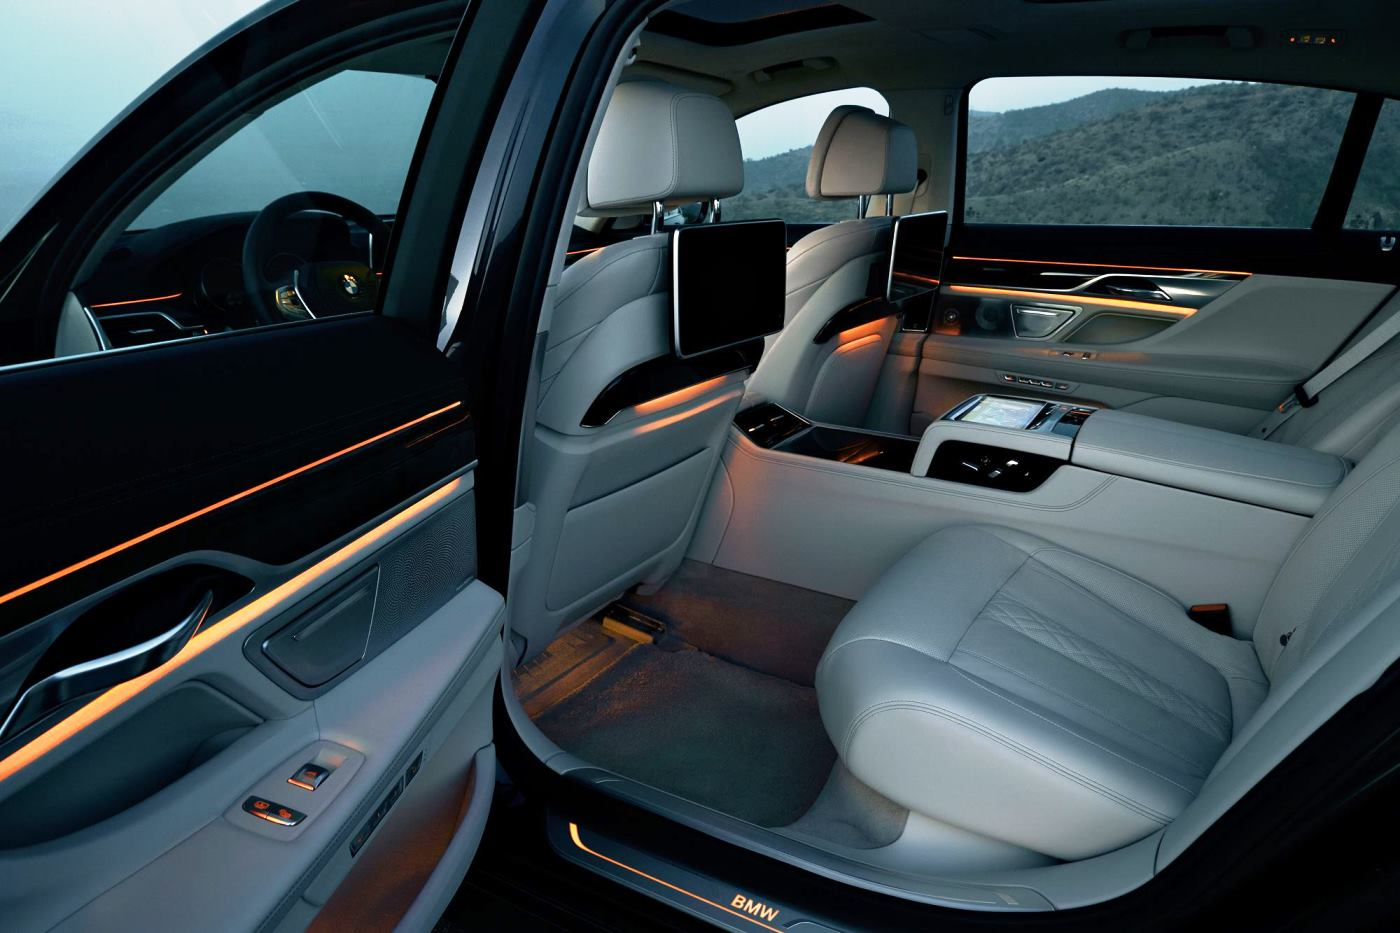 2016 BMW 7 Series Interior Photos 5